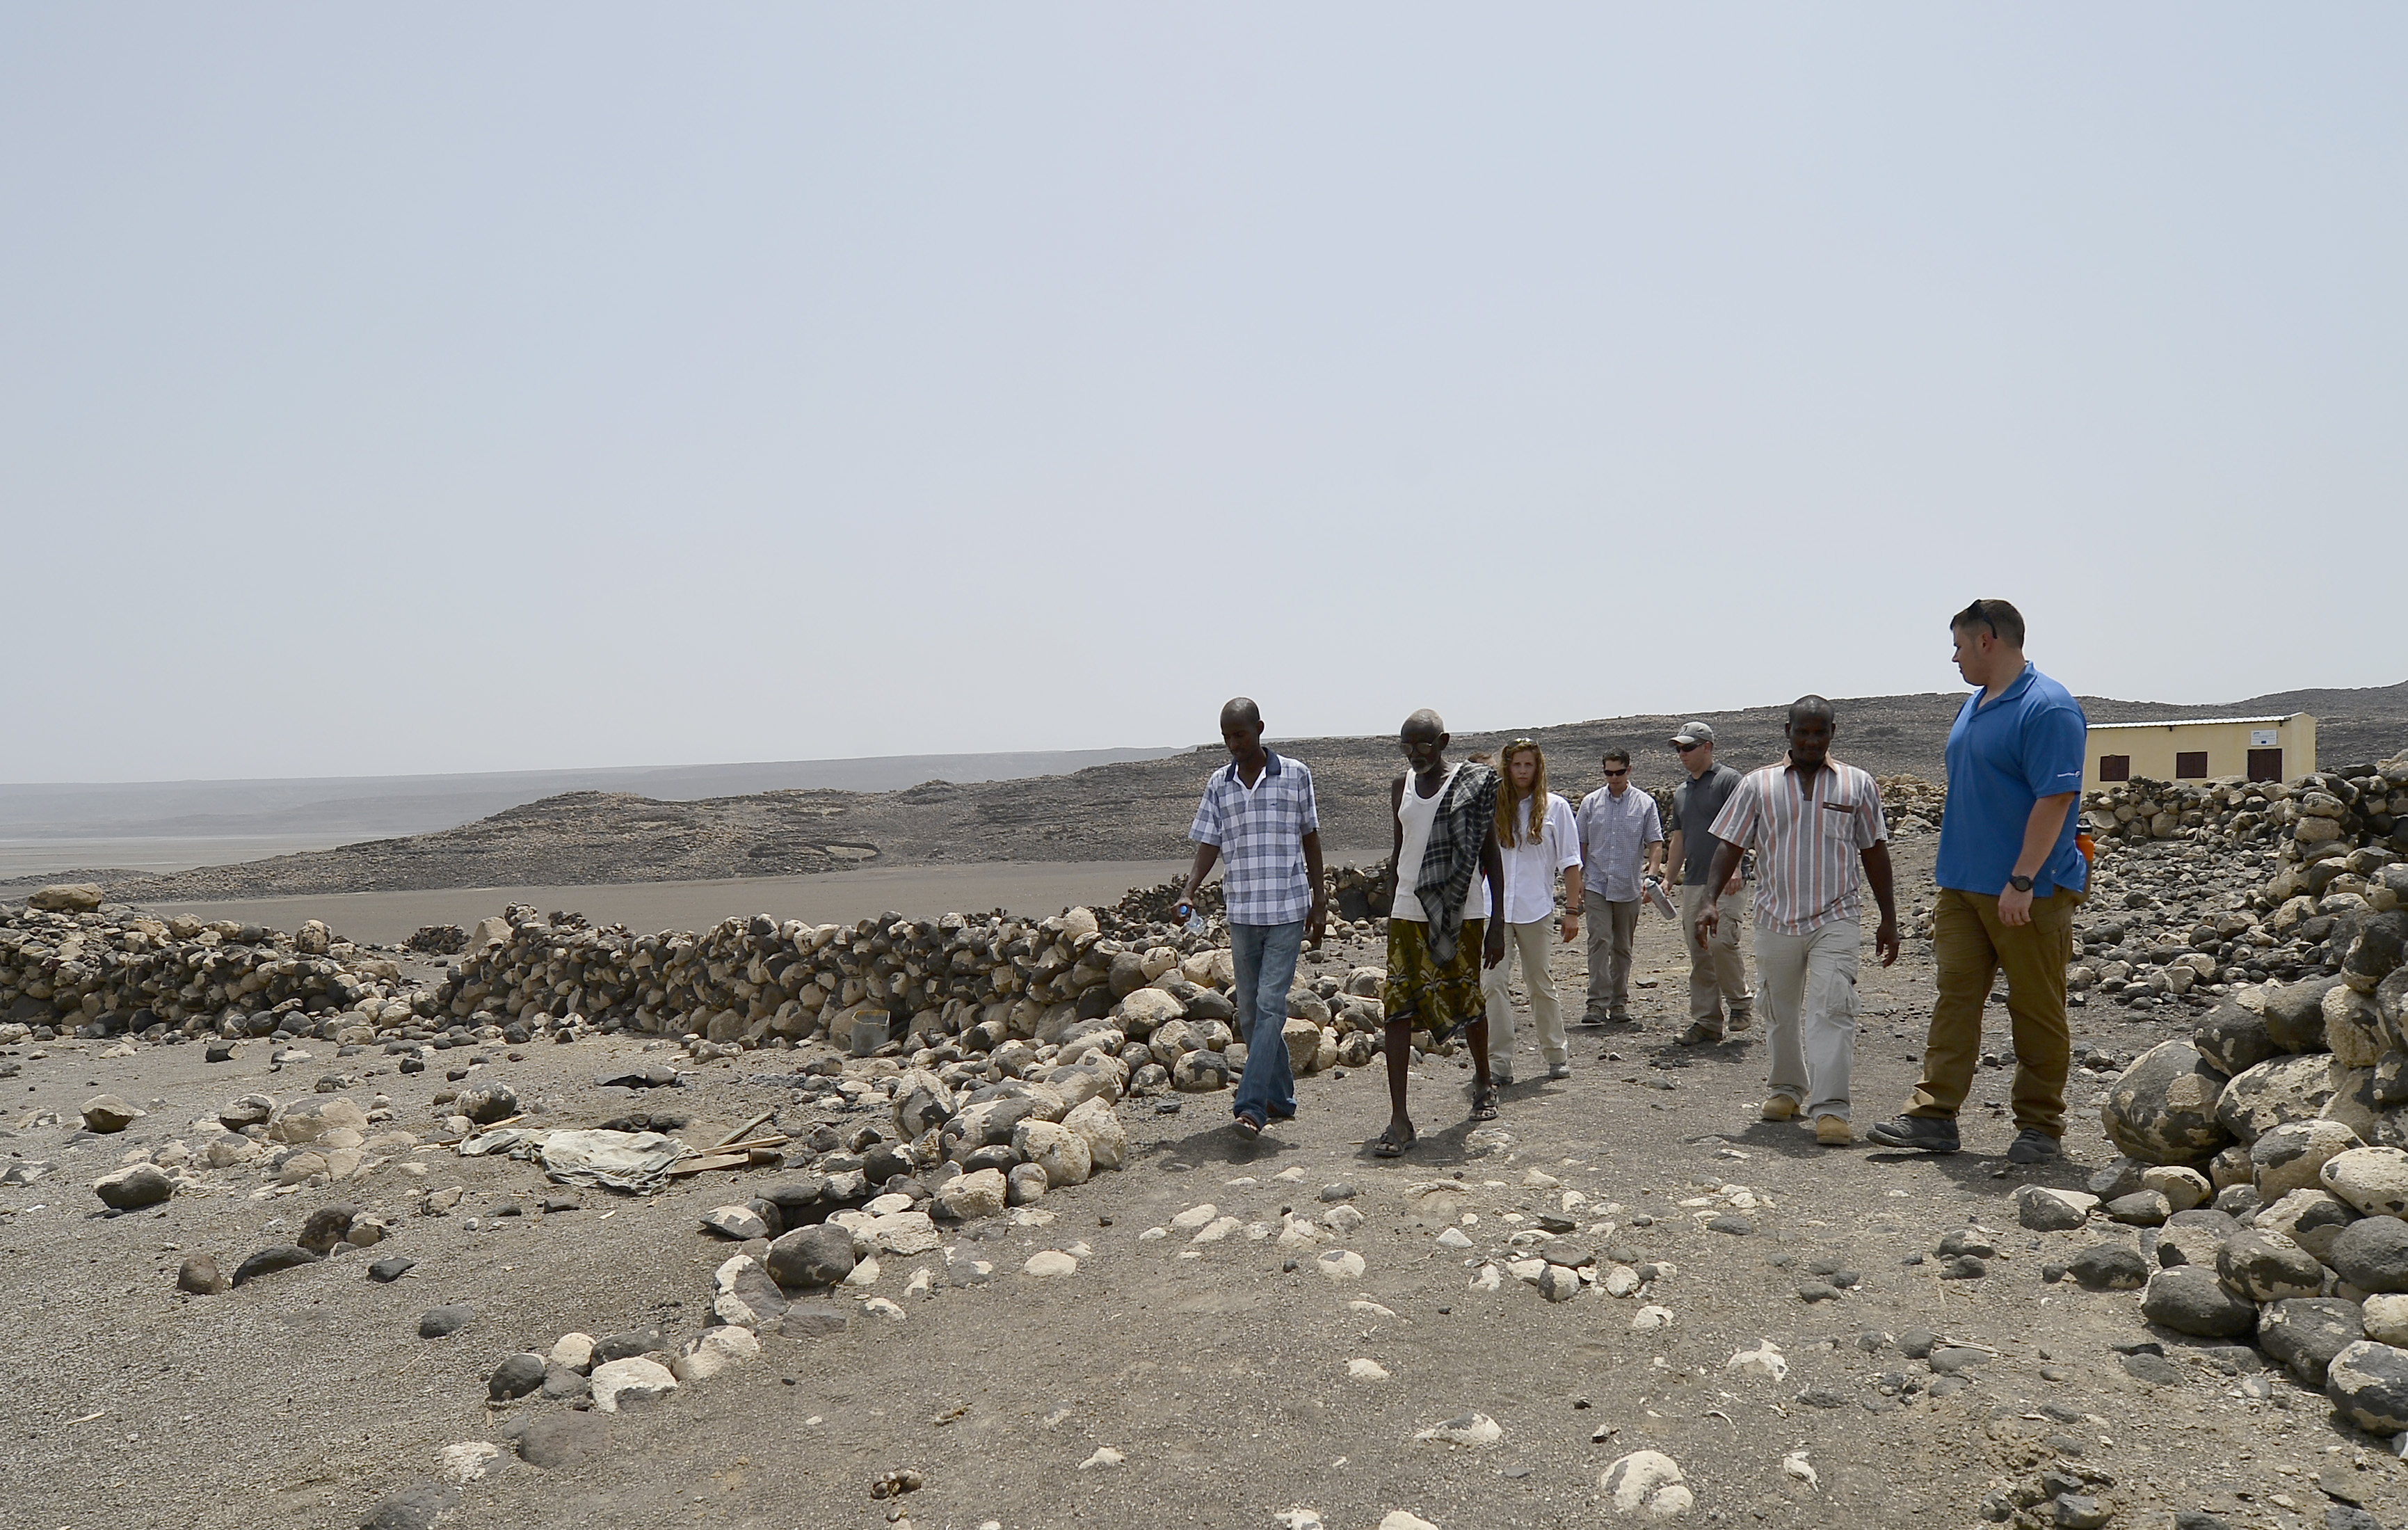 Salt Water Rest Stop village elders and members of the U.S. Army 404th Civil Affairs Battalion, assigned to Combined Joint Task Force- Horn of Africa, walk around Lake Abbé, Djibouti, May 20, 2015. Recurrent drought in the region has made life difficult for the herdsman, losing up to seventy percent of their livestock. Every few month volunteers drop off food and water to assist with malnourishment. (U.S. Air Force photo by Senior Airman Nesha Humes)